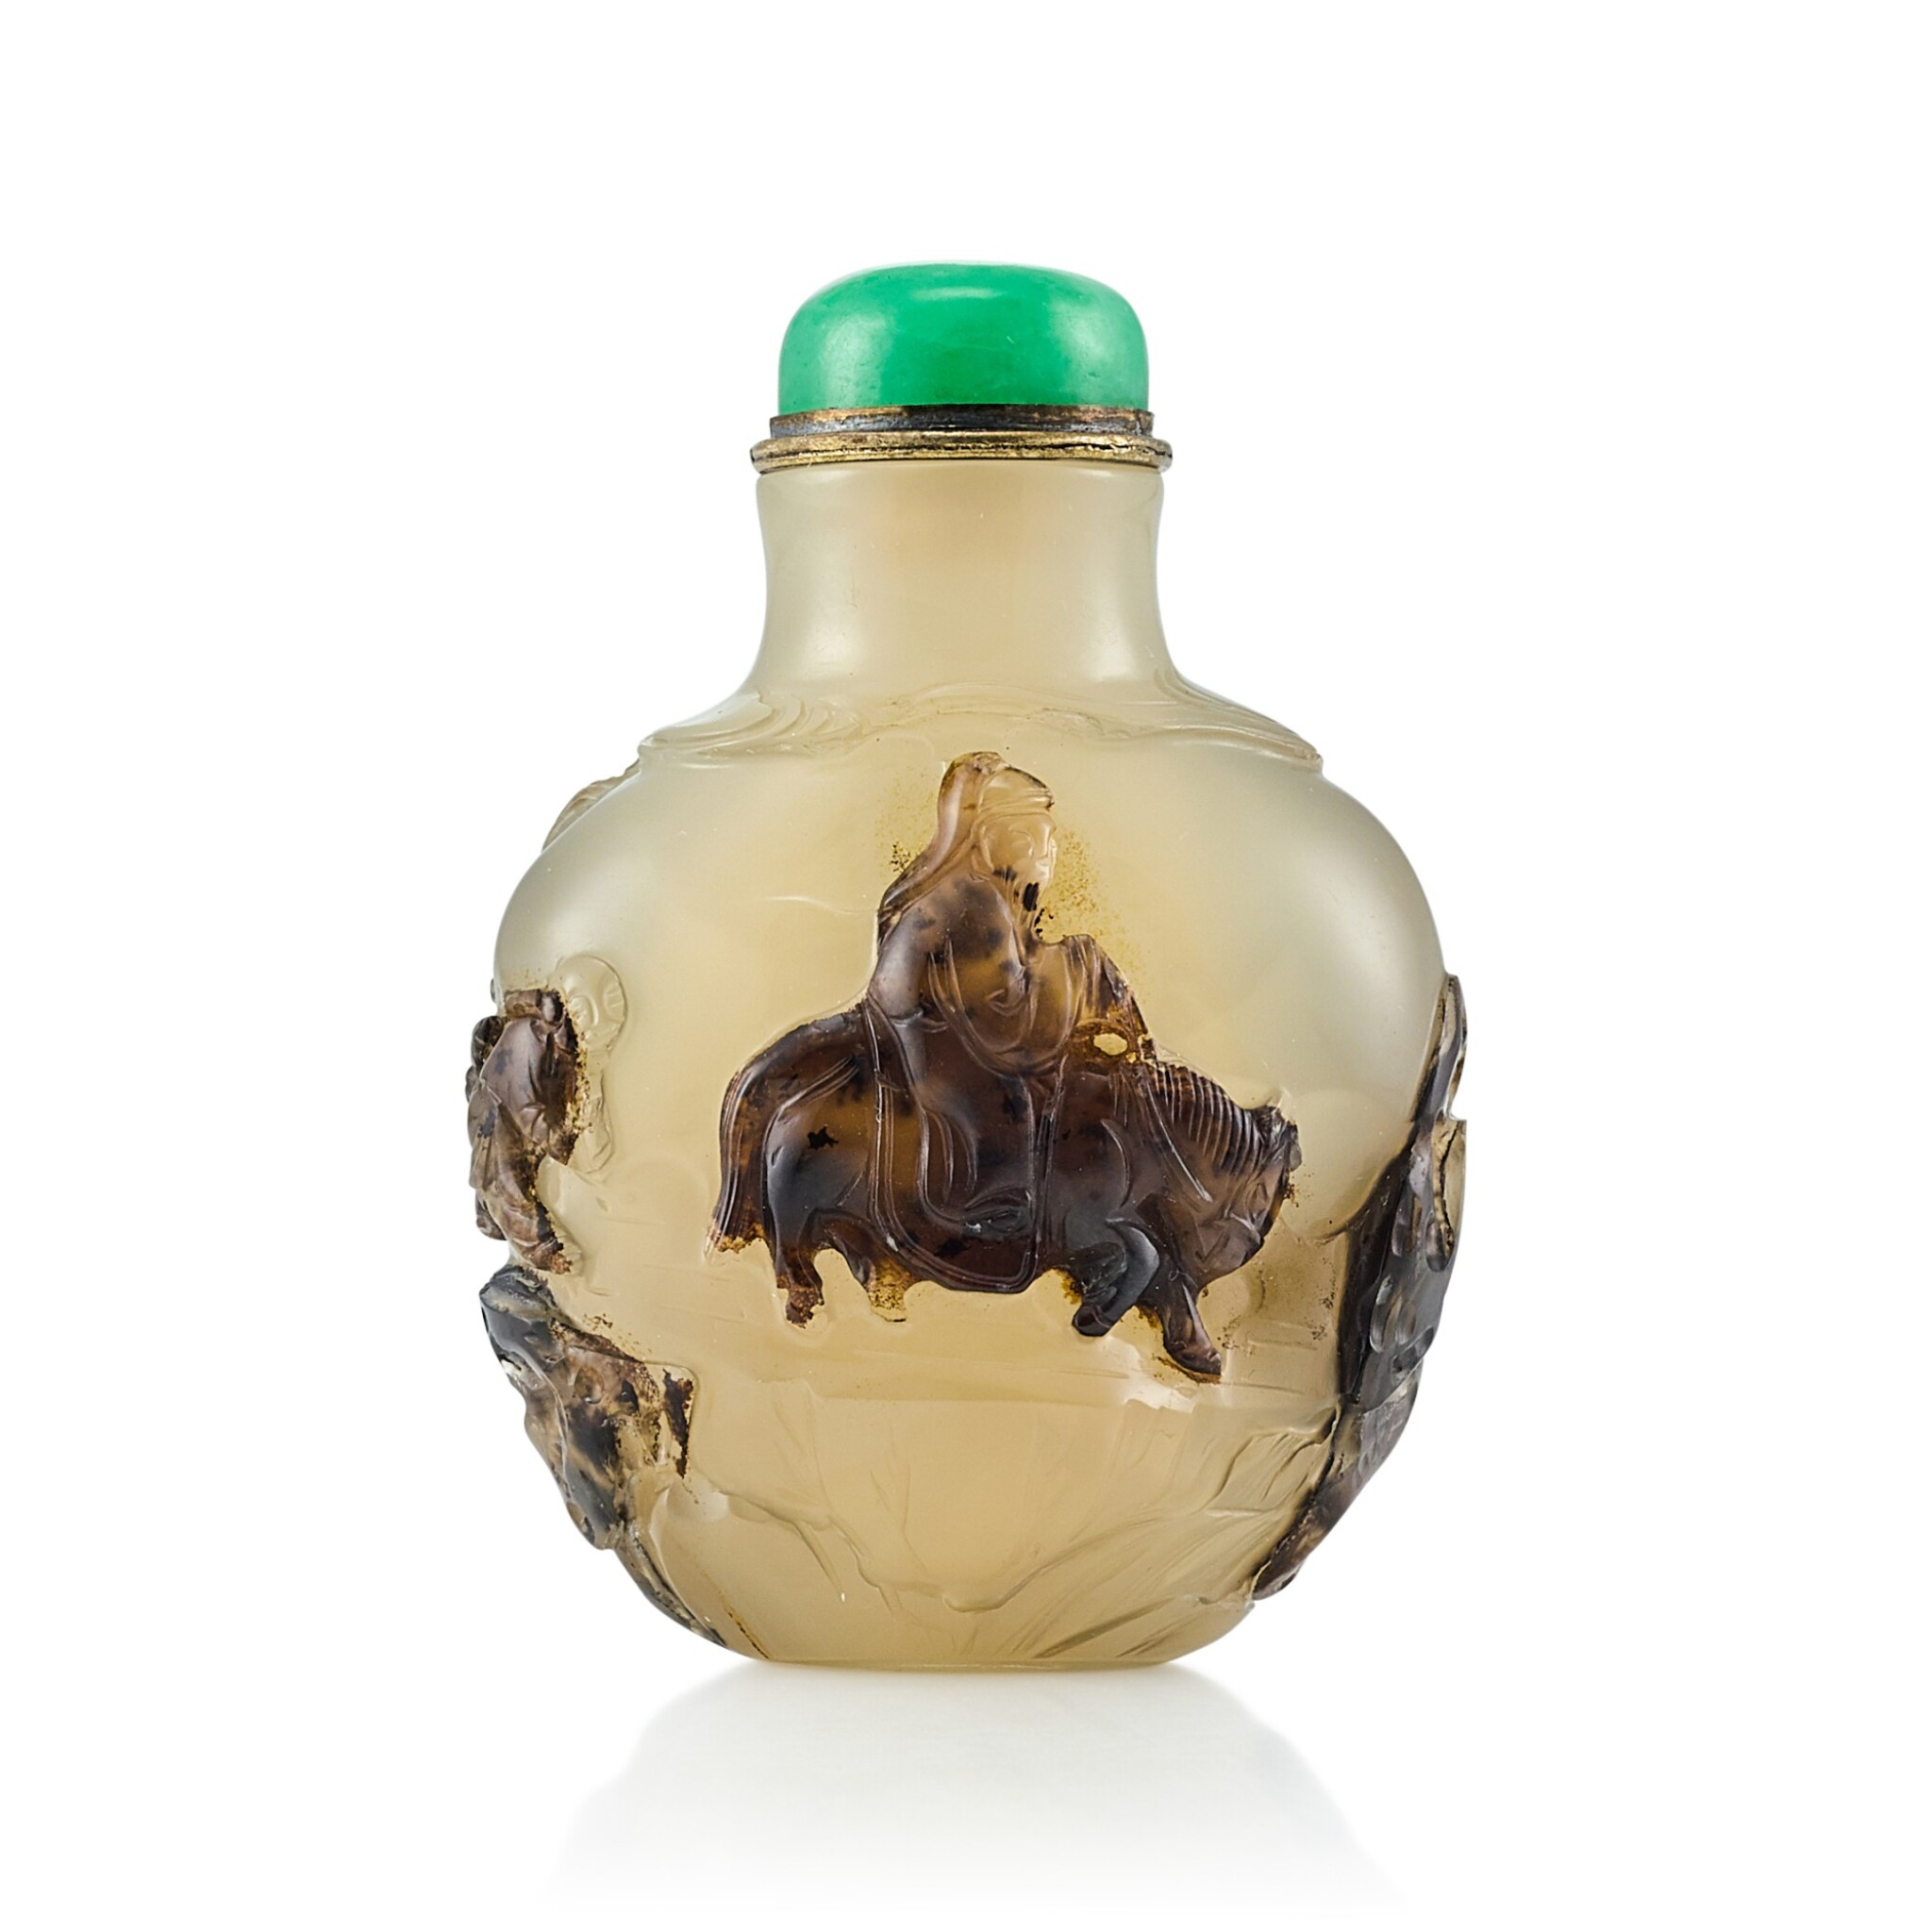 View full screen - View 1 of Lot 3050. An Inscribed Agate 'Equestrian' Snuff Bottle Suzhou, Qing Dynasty, 18th - 19th Century | 清十八至十九世紀 蘇作瑪瑙巧雕「採梅圖」鼻煙壺.